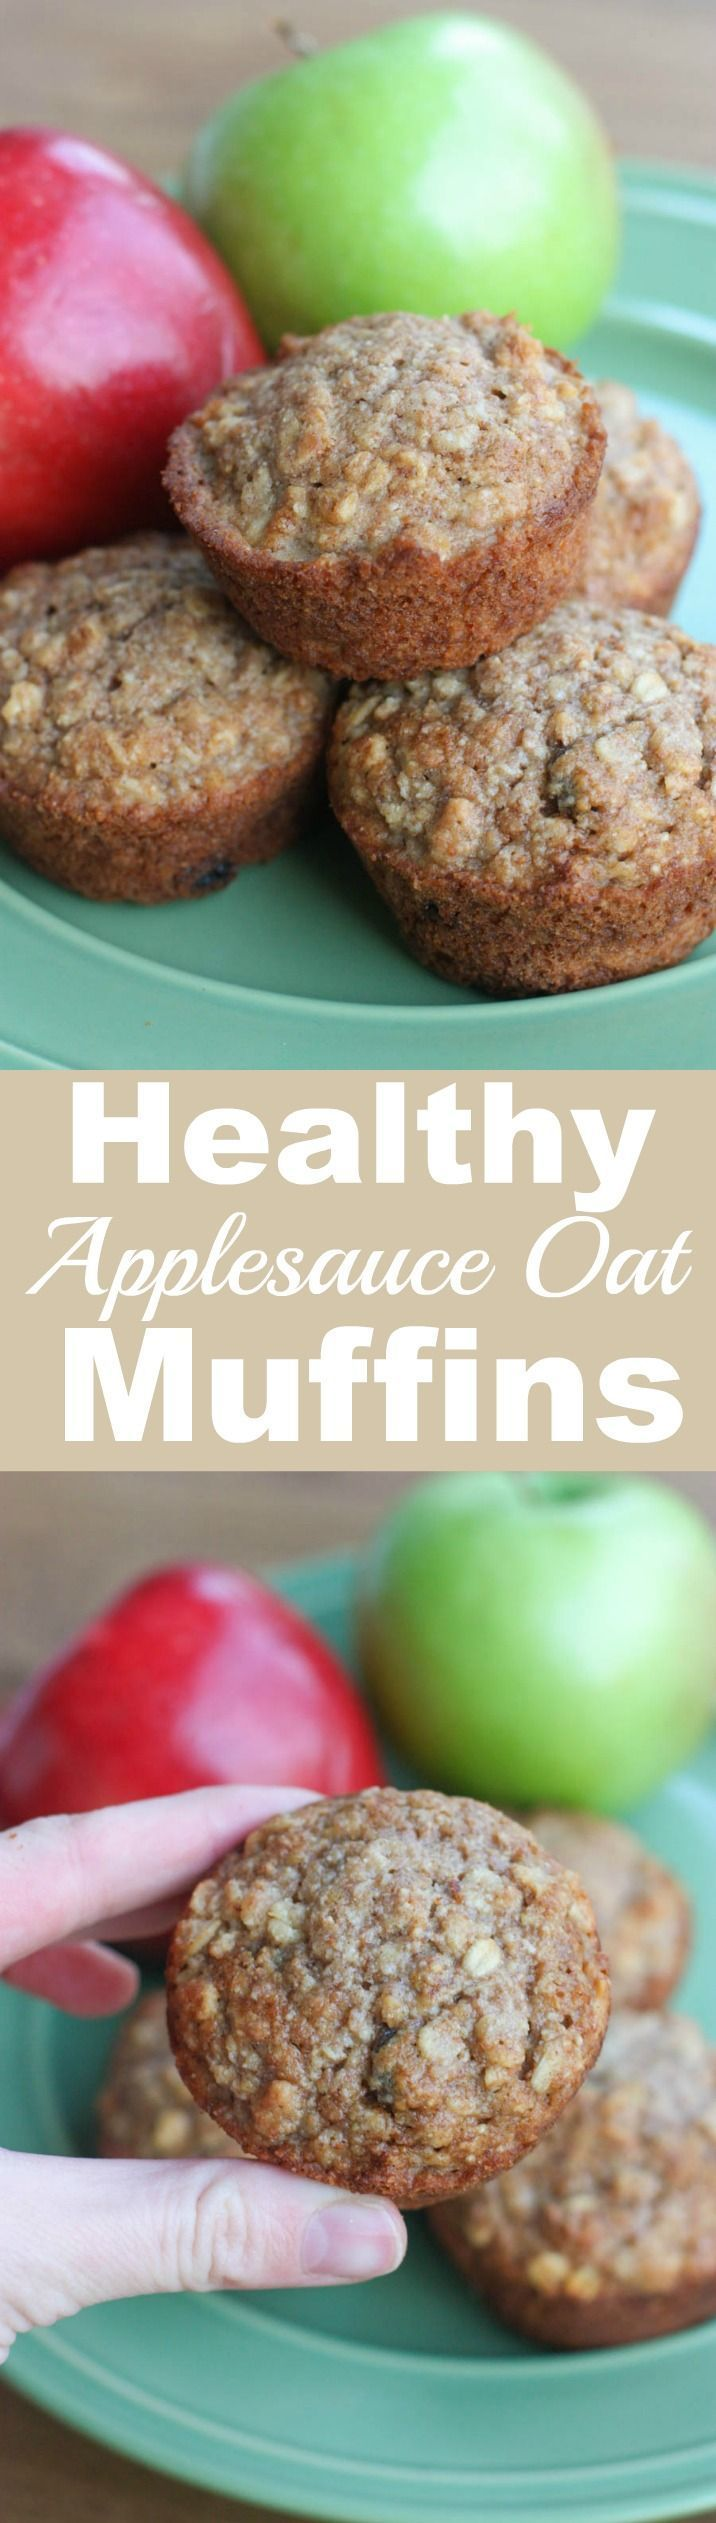 Healthy Applesauce Oat Muffins are the BEST healthy muffins--my whole family loves them, including my kids. And, they're FREEZER FRIENDLY! | Tastes Better From Scratch http://Liapela.com